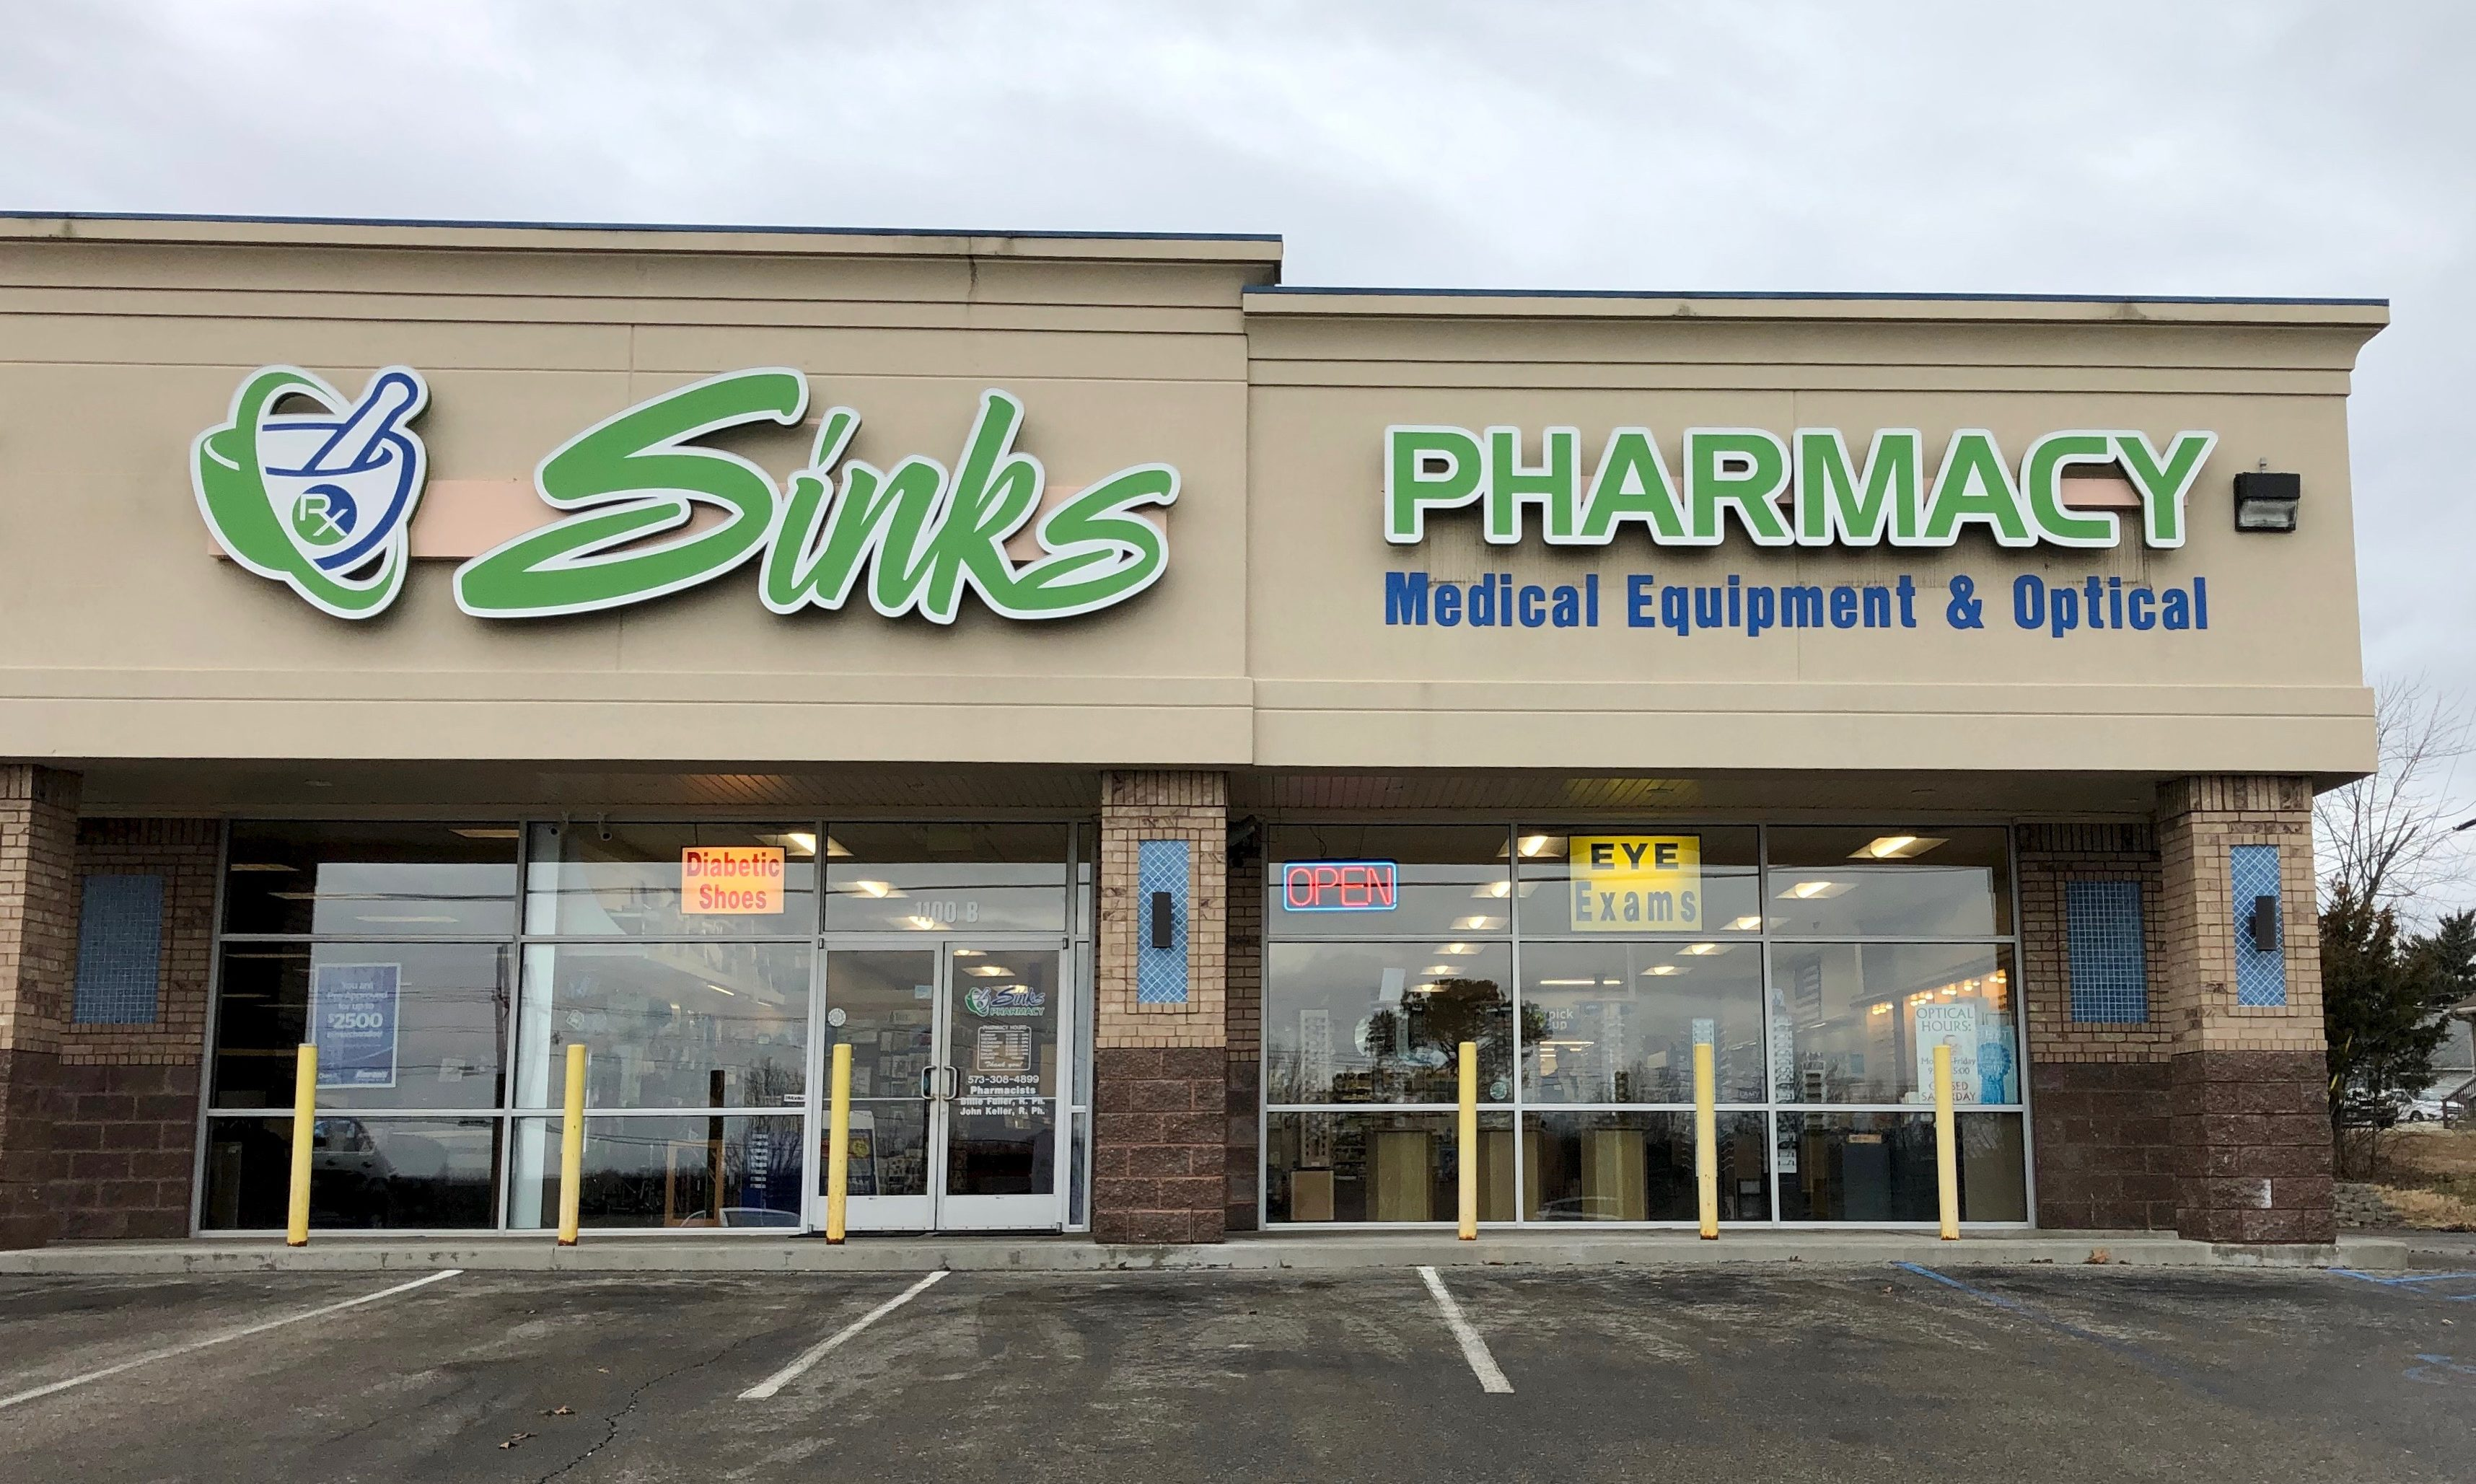 Rolla South – Sinks Pharmacy,